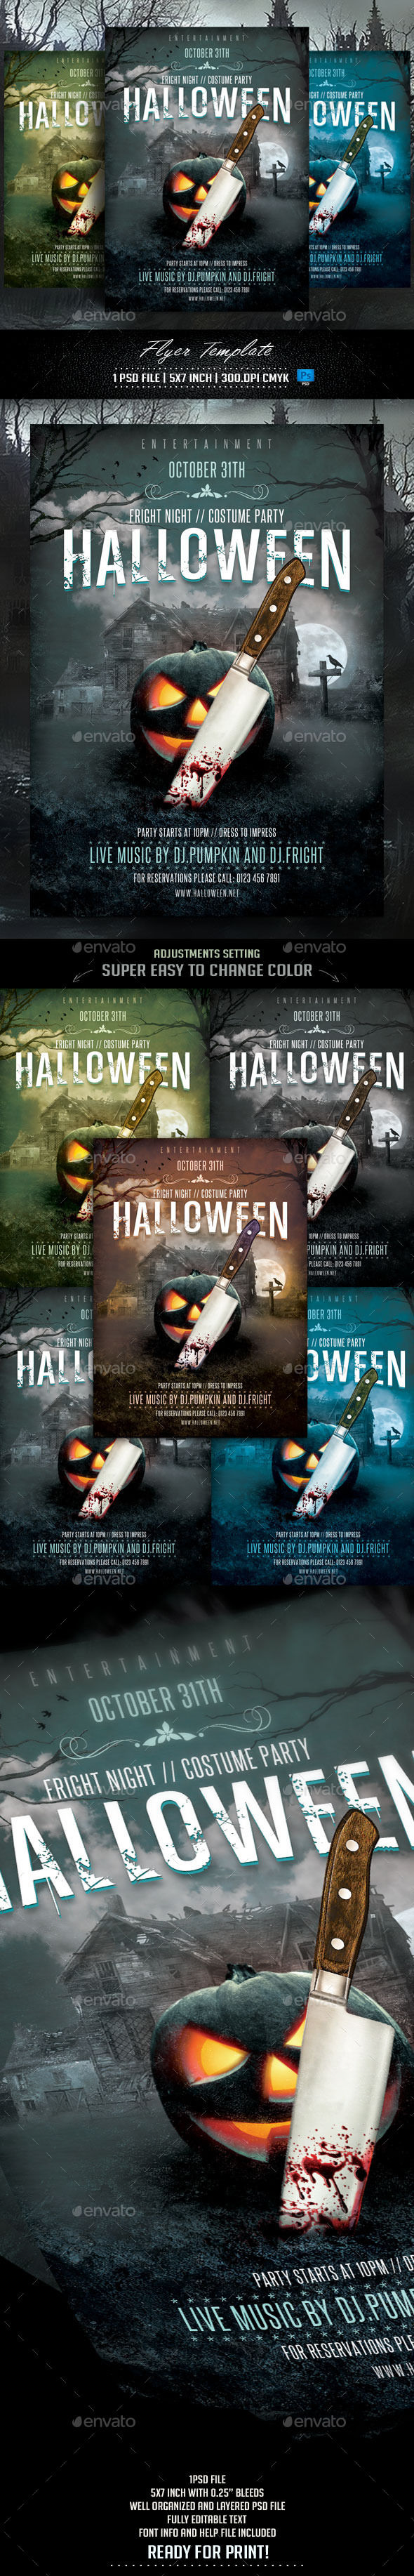 Halloween Flyer Template by Briell (Halloween party flyer)